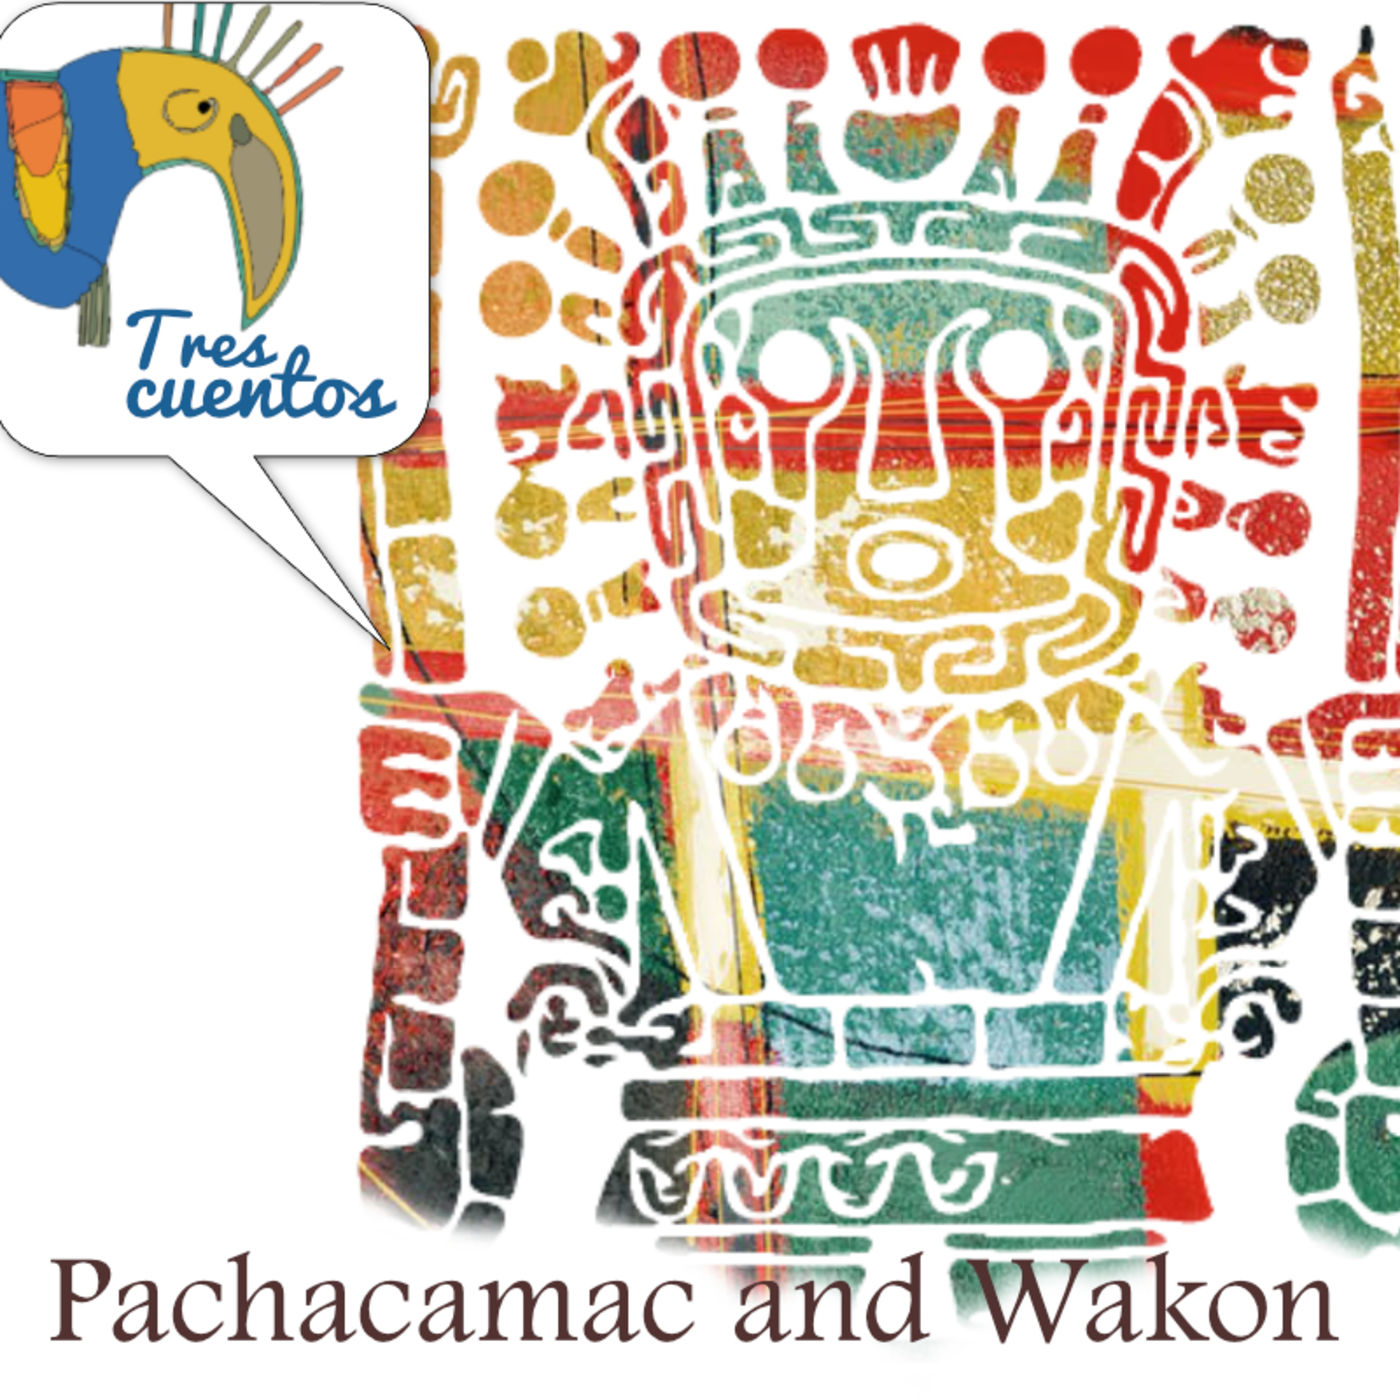 5 - Mythology - Pachacamac and Wakon - Peru